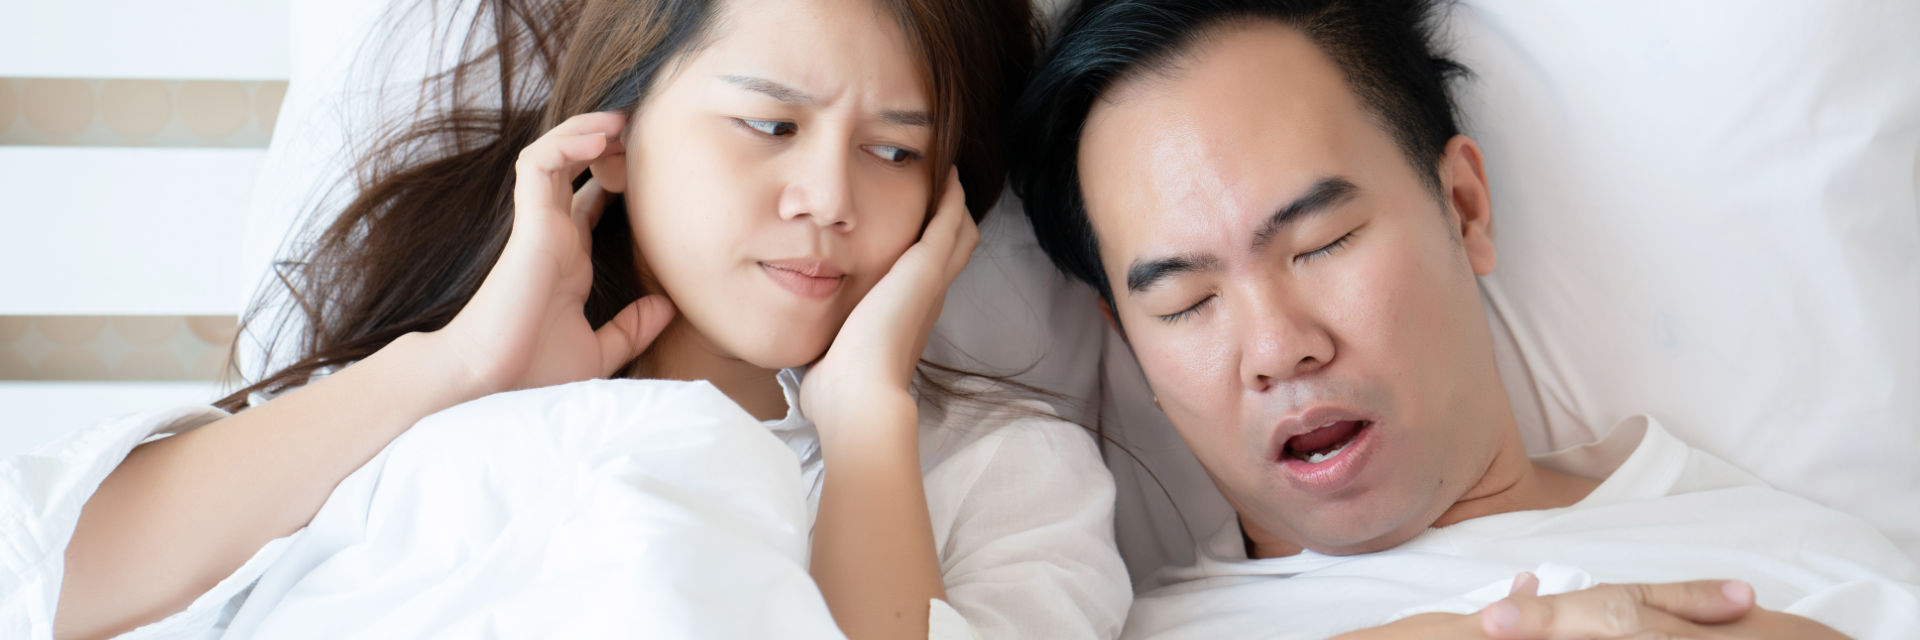 A snoring man sleeping next to an annoyed woman blocking her ears.